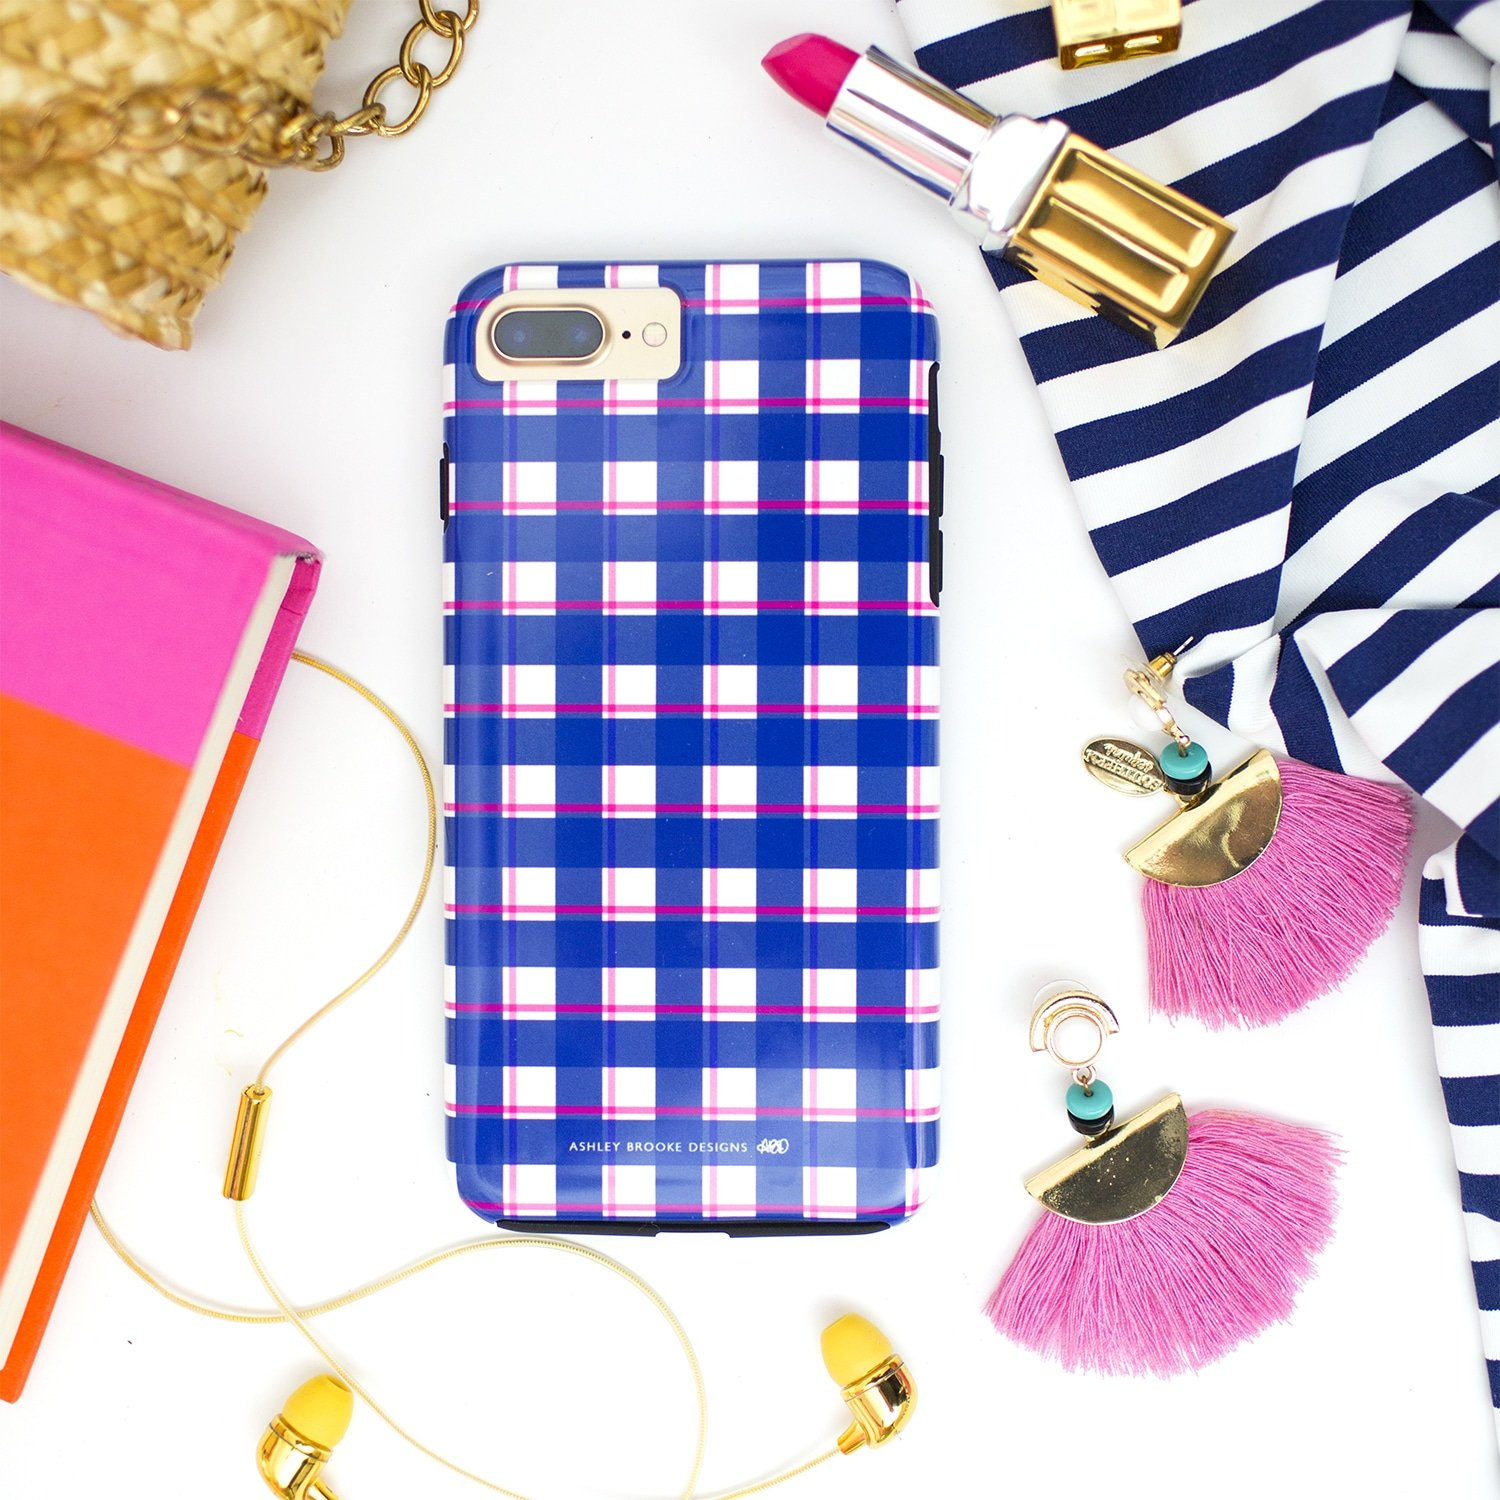 Ashley Brooke Designs Hand Illustrated Navy Plaid Phone Cases | ashleybrookedesigns.com